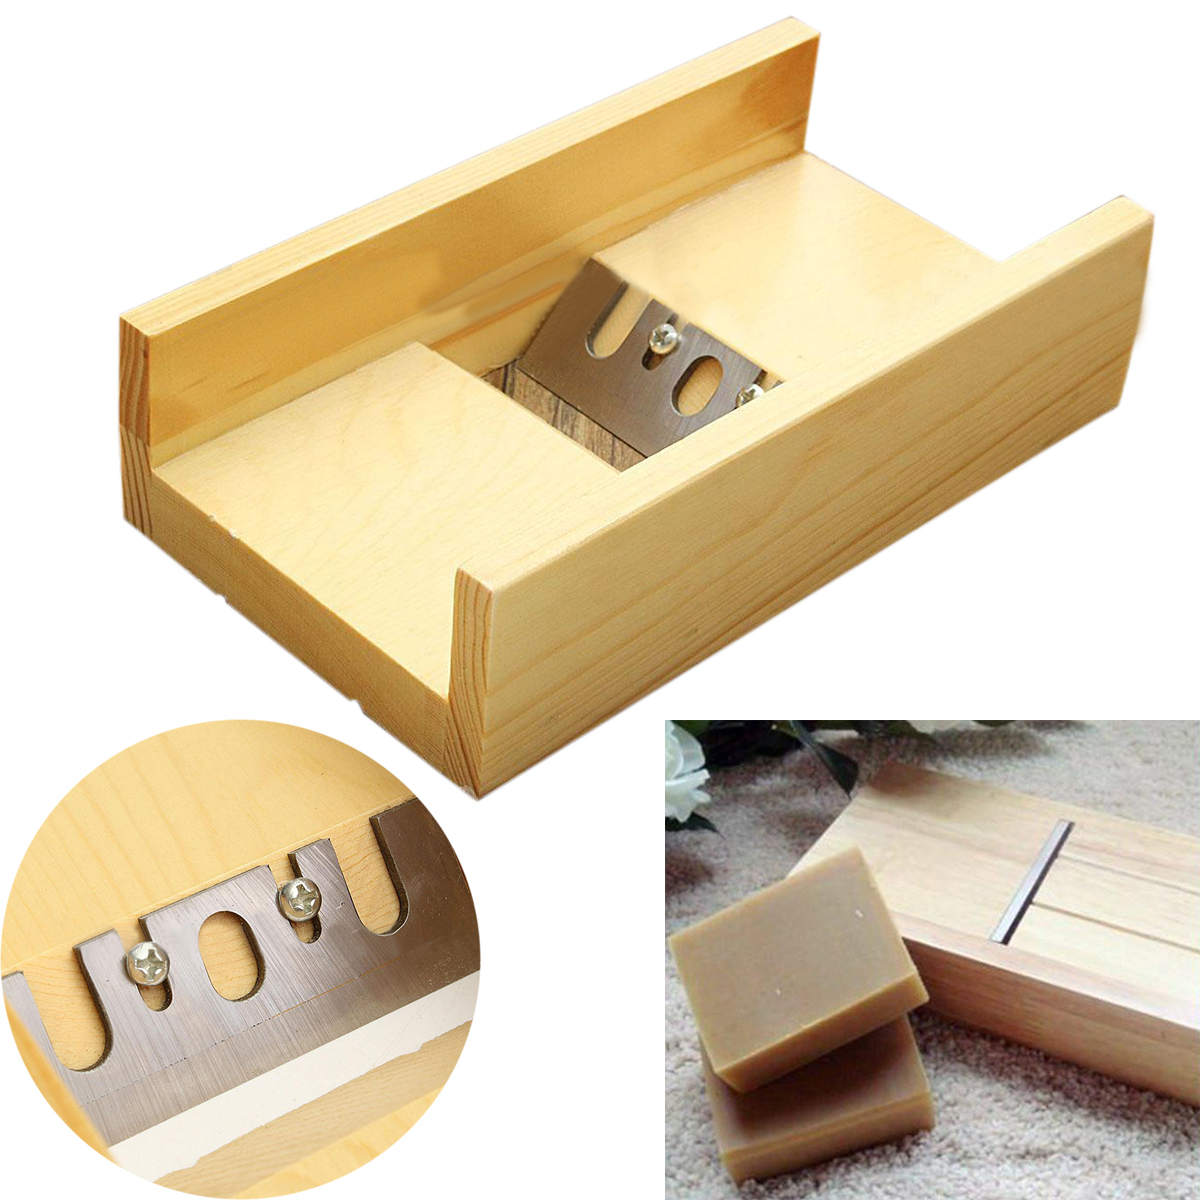 1pc Sharp Blade Soap Beveler Planer Wooden Beveler Candle Mold Cutter Craft Making Tool 2016 one soap mold loaf cutter adjustable wood and beveler planer cutting tool set